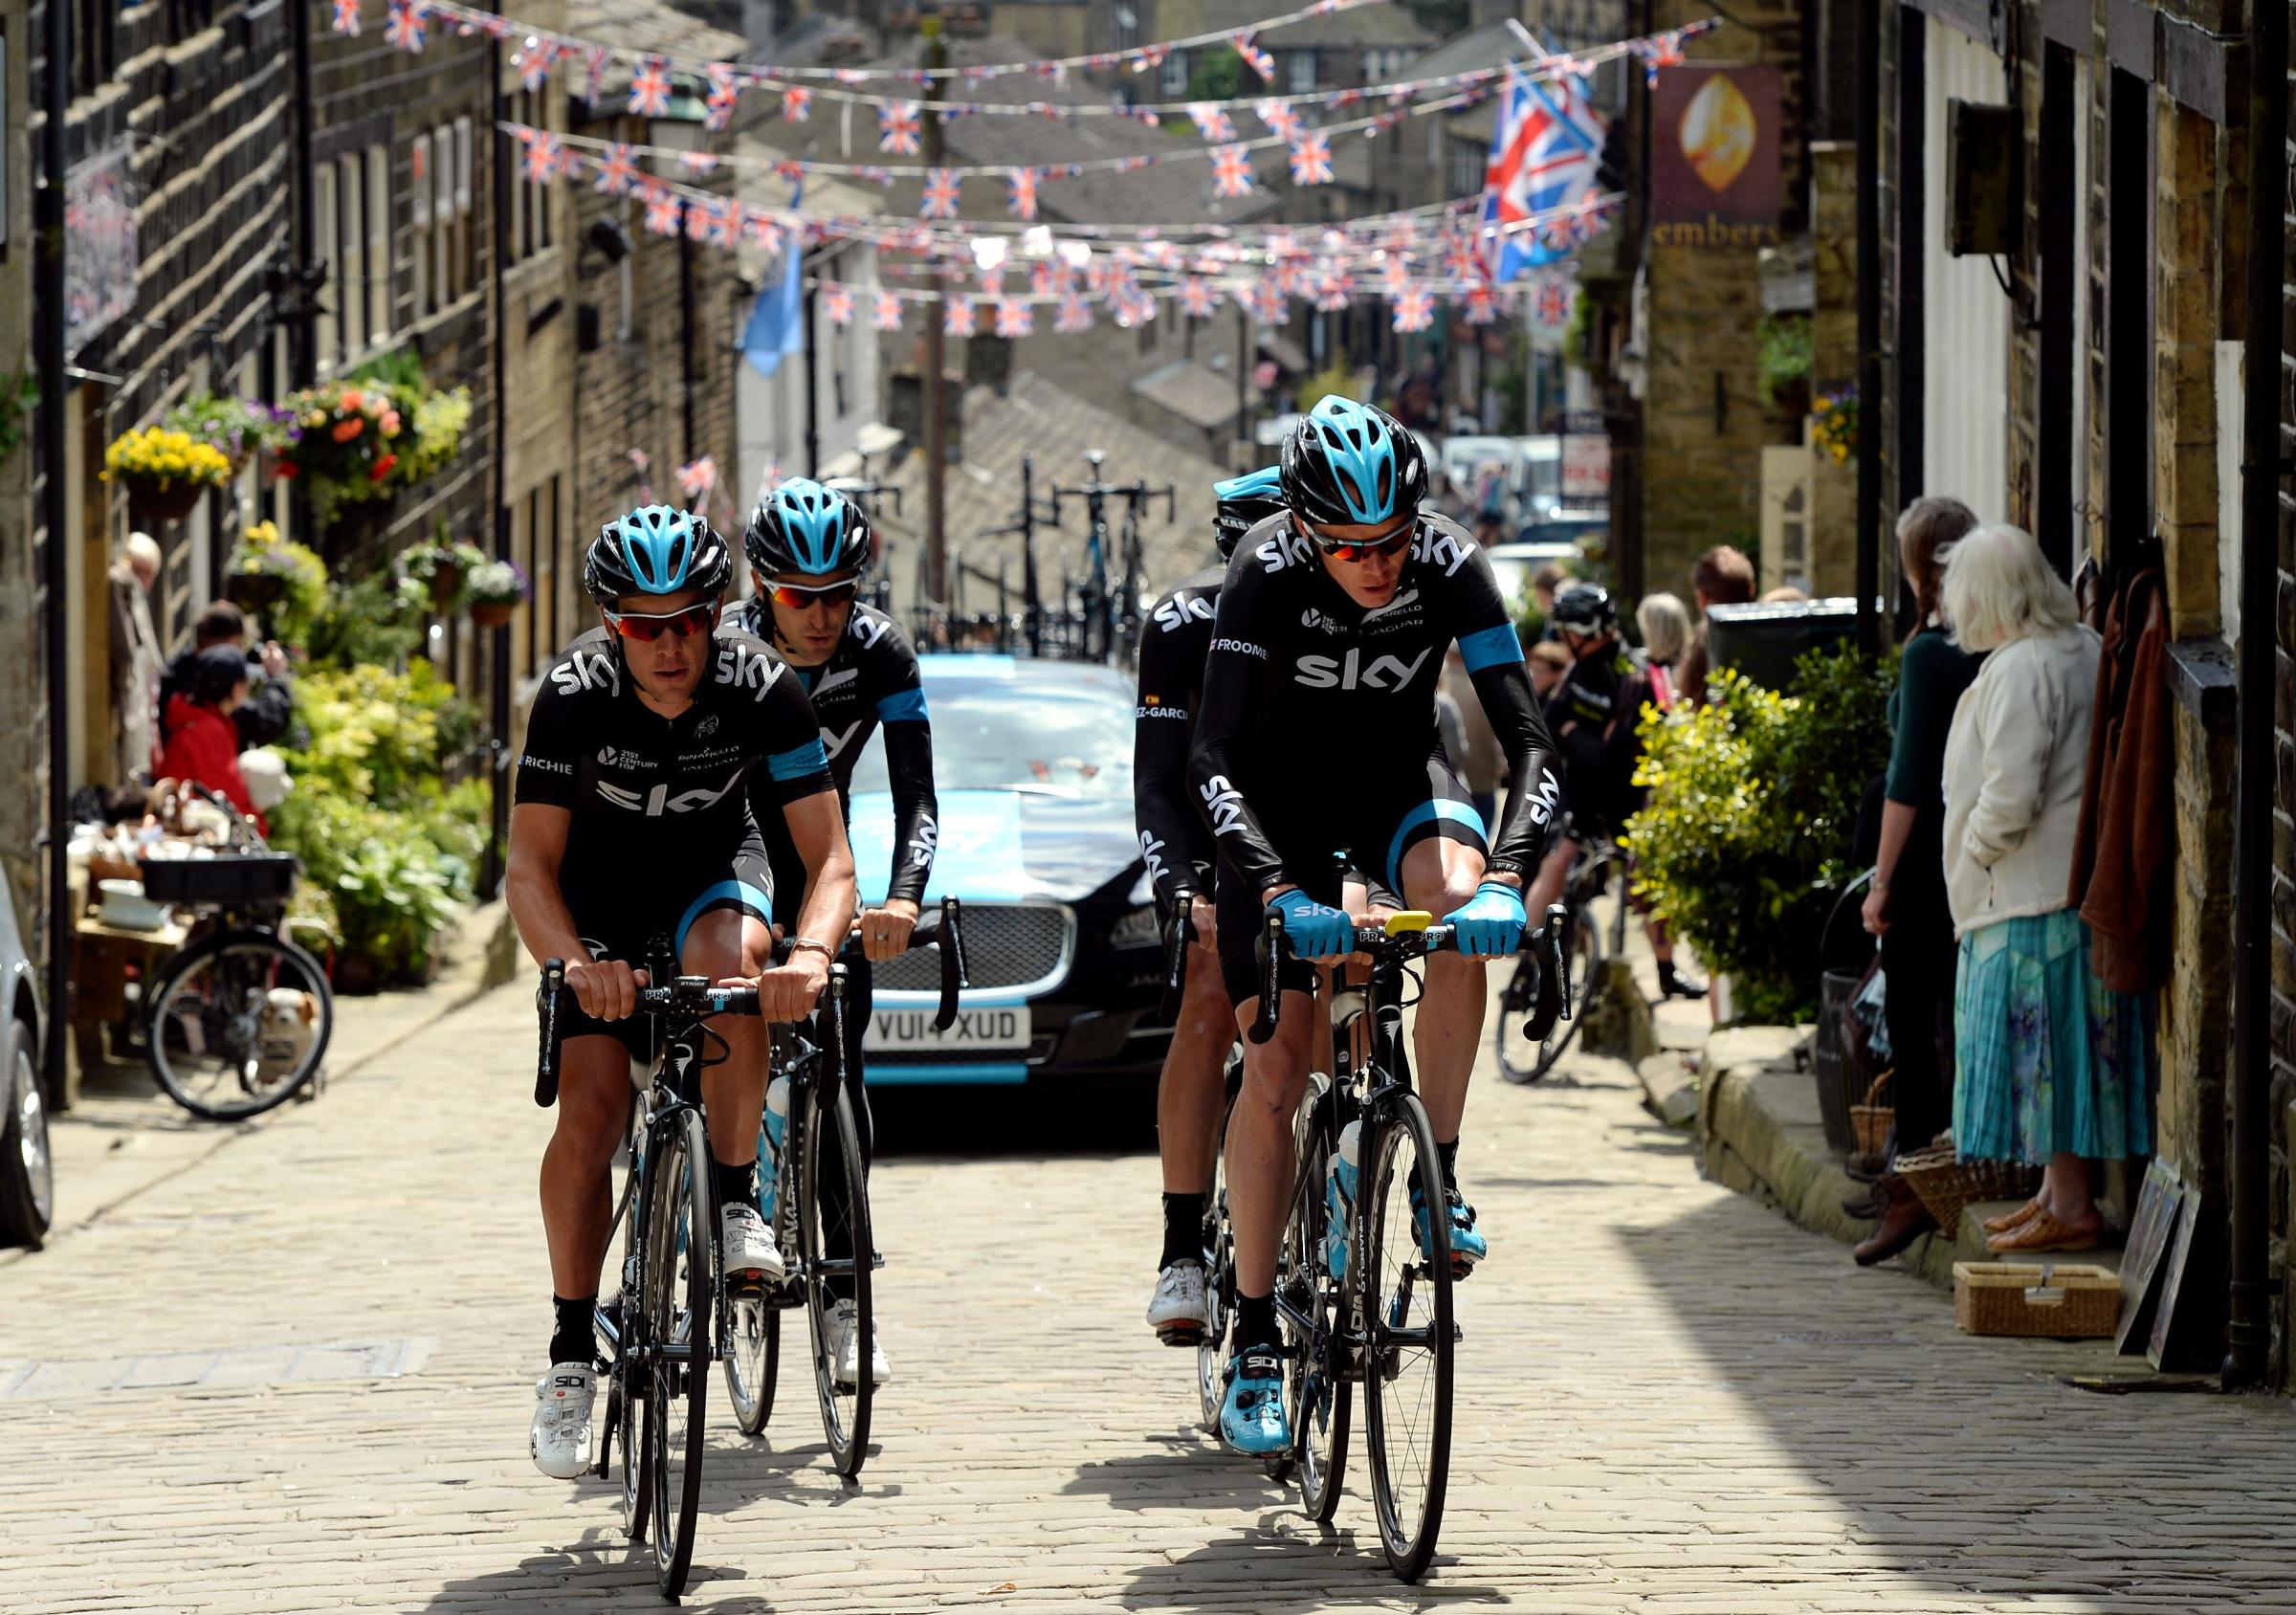 Team Sky's Chris Froome (front right) rides alongside Richie Porte as they cli